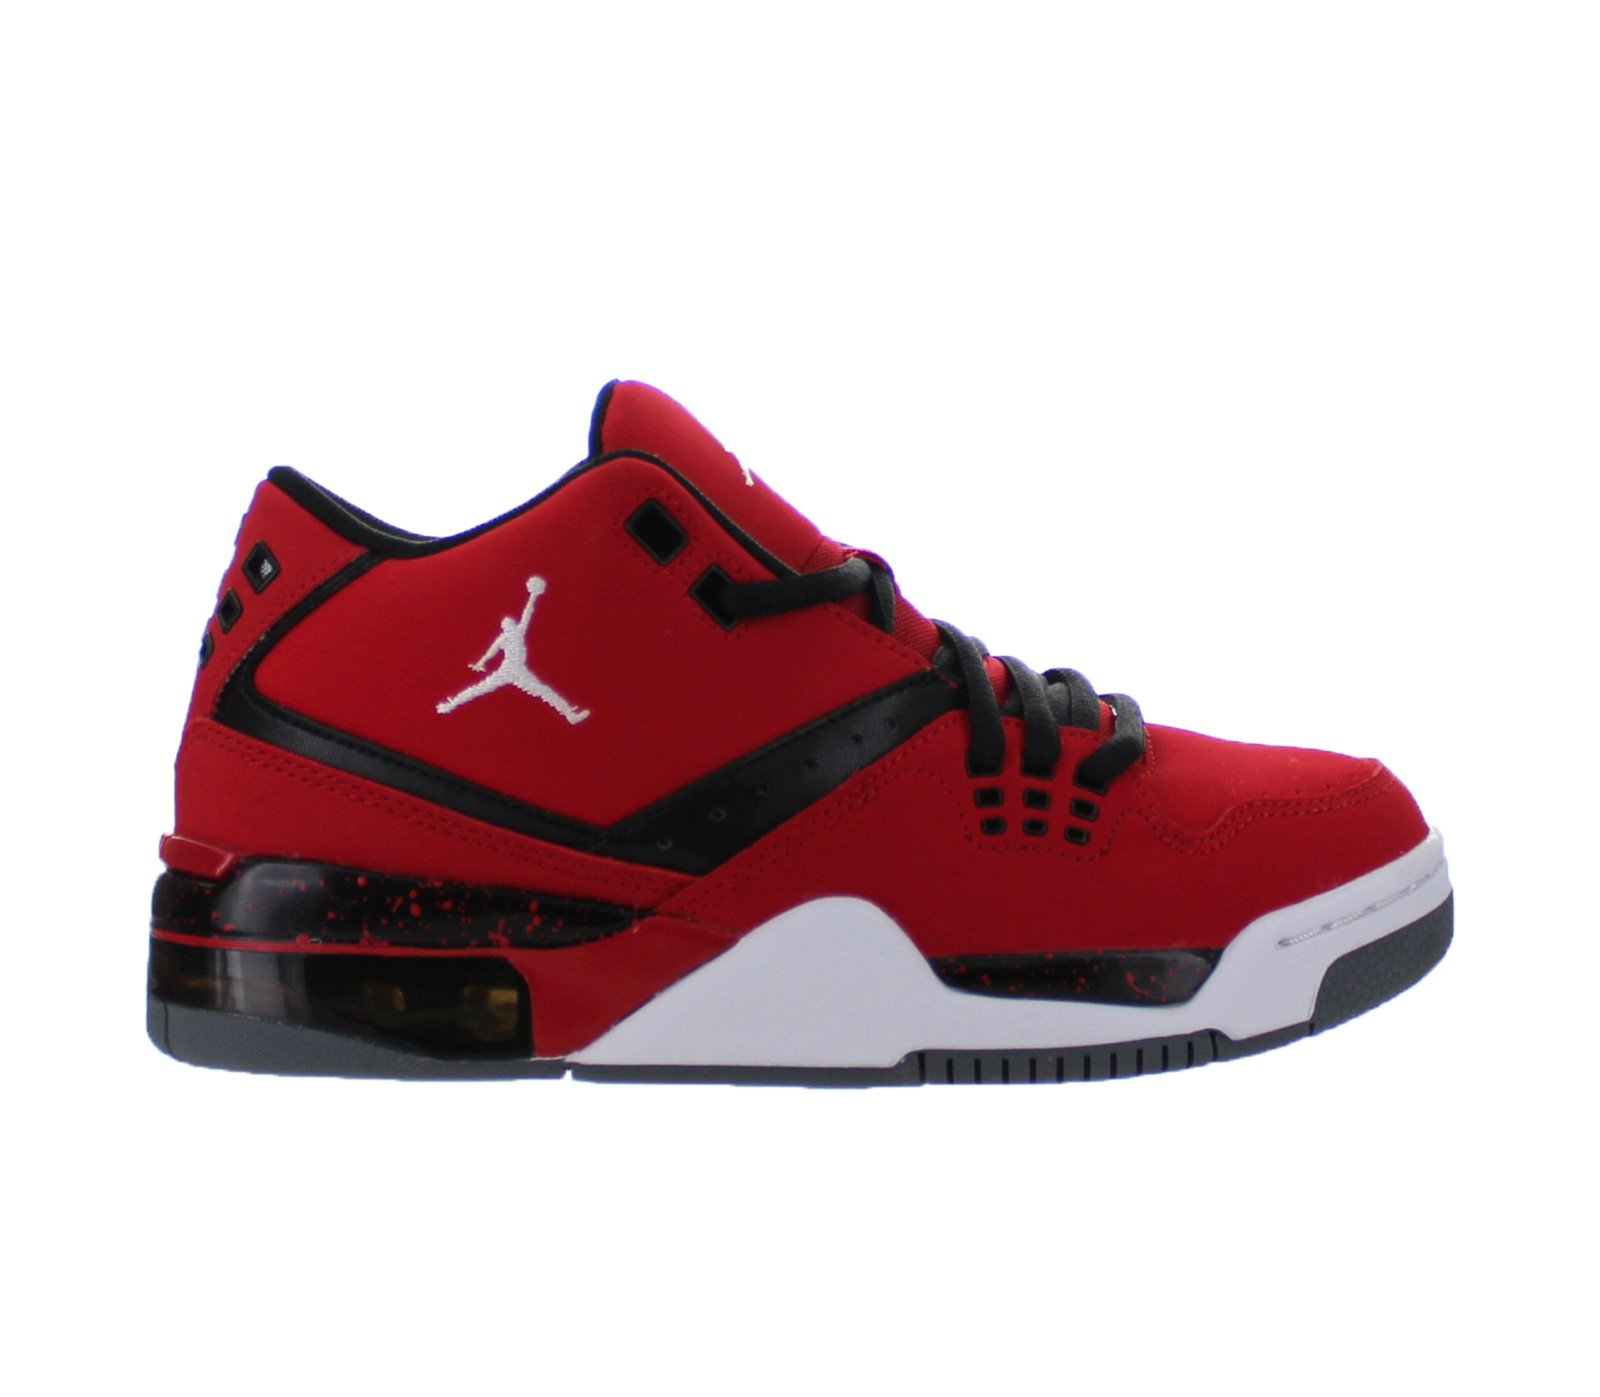 c89addb0426649 ... sale air jordan flight 23 gs gym red white black cool grey 317821 601  a02d1 54b4d